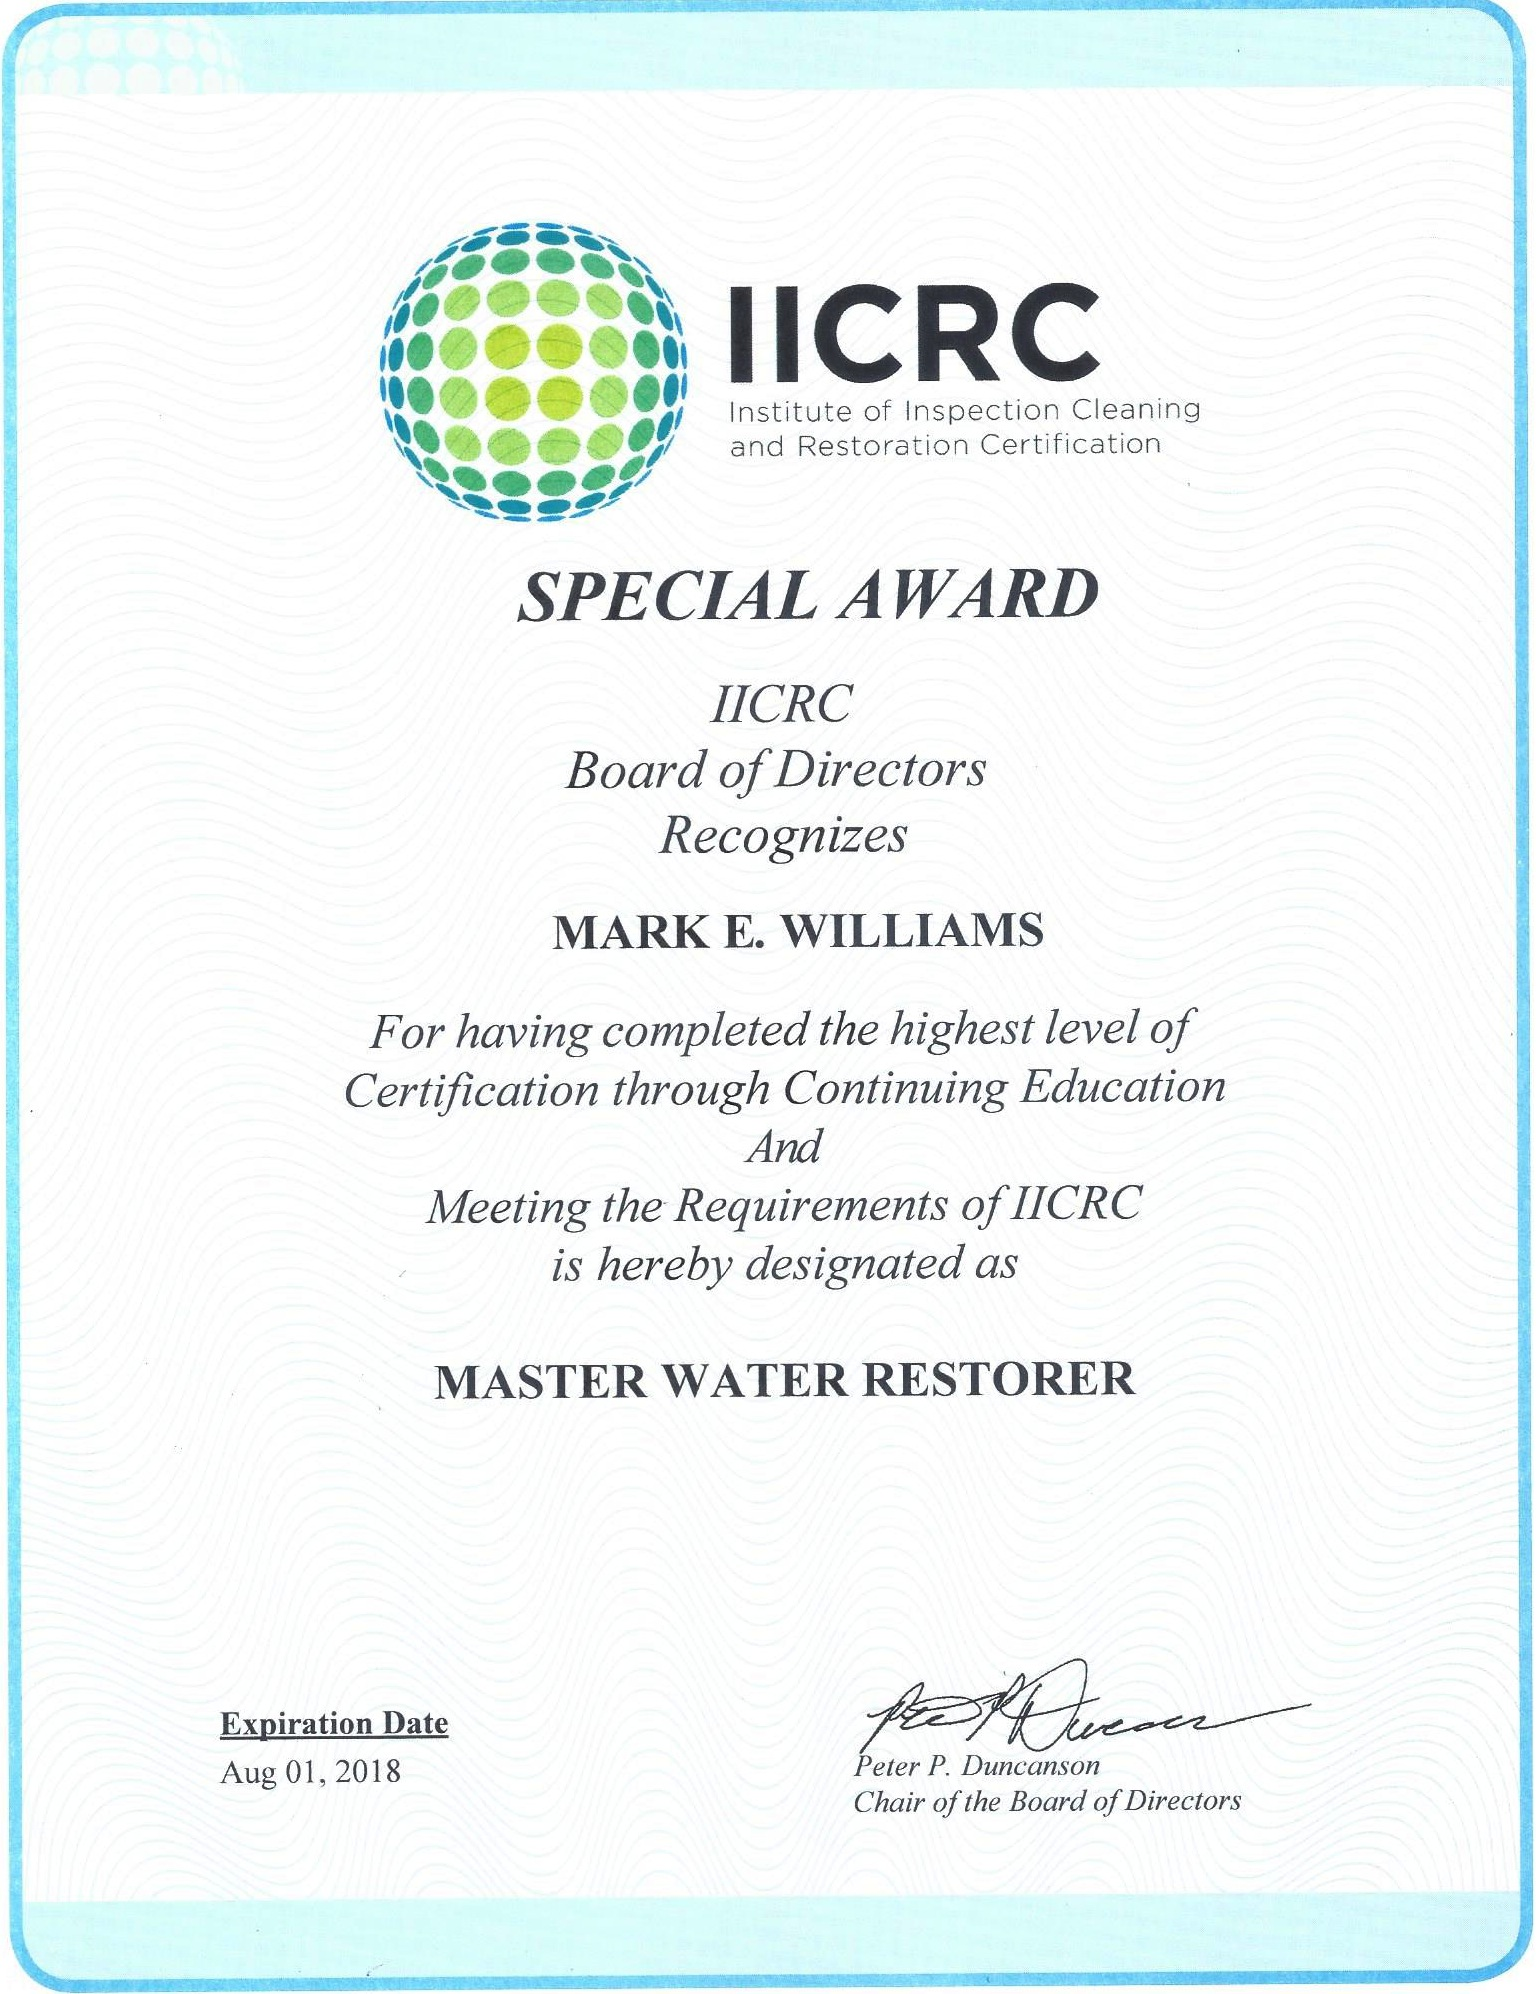 Apex restoration llc oahu hawaii cleaner flood and water damage iicrc certified firm iicrc certified for restoration cleaning master water restorer 1betcityfo Images